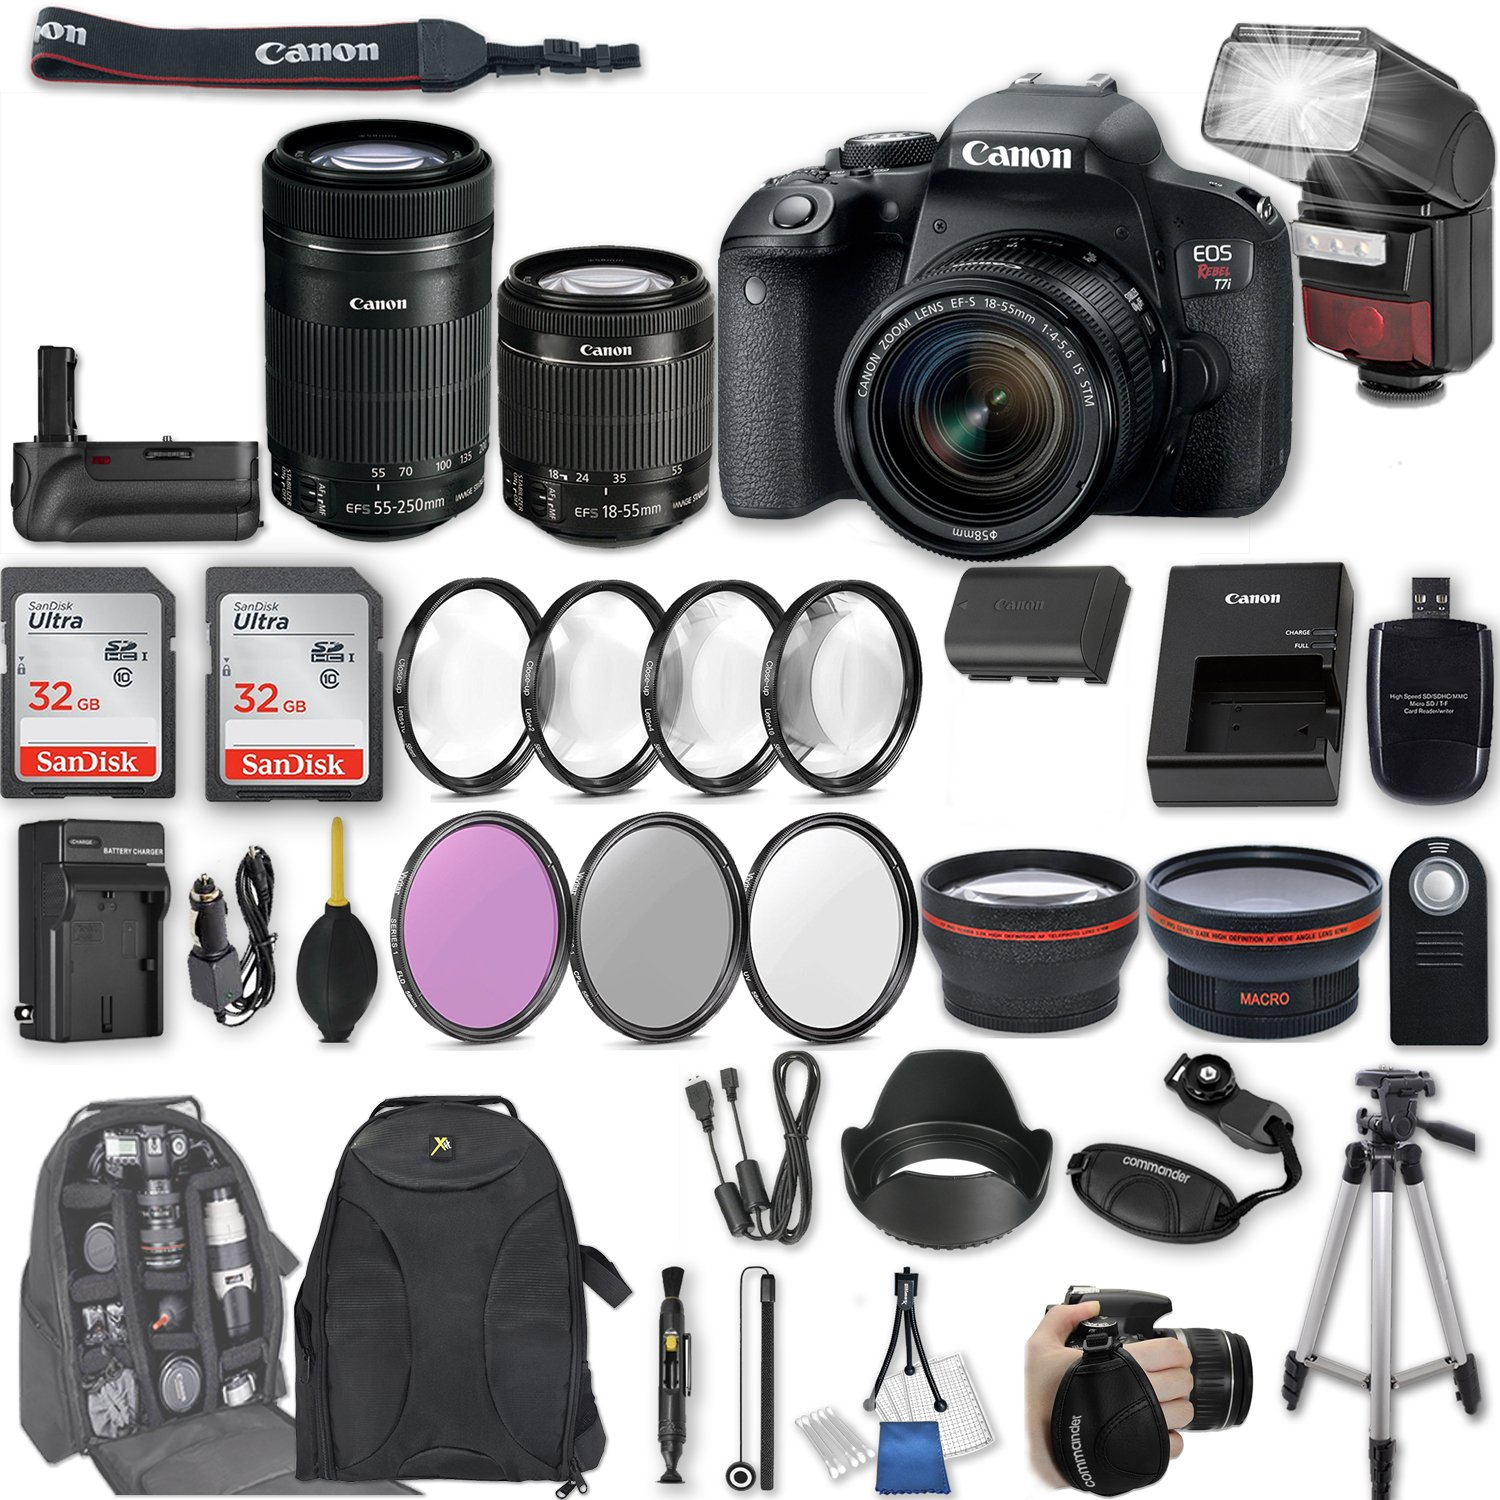 Canon EOS Rebel T7i DSLR Camera with EF-S 18-55mm f/4-5.6 IS STM Lens + EF-S 55-250mm f/4-5.6 IS STM Lens + 2Pcs 32GB Sandisk SD Memory + Automatic Flash + Battery Grip + Filter & Macro Kits + More by Canon